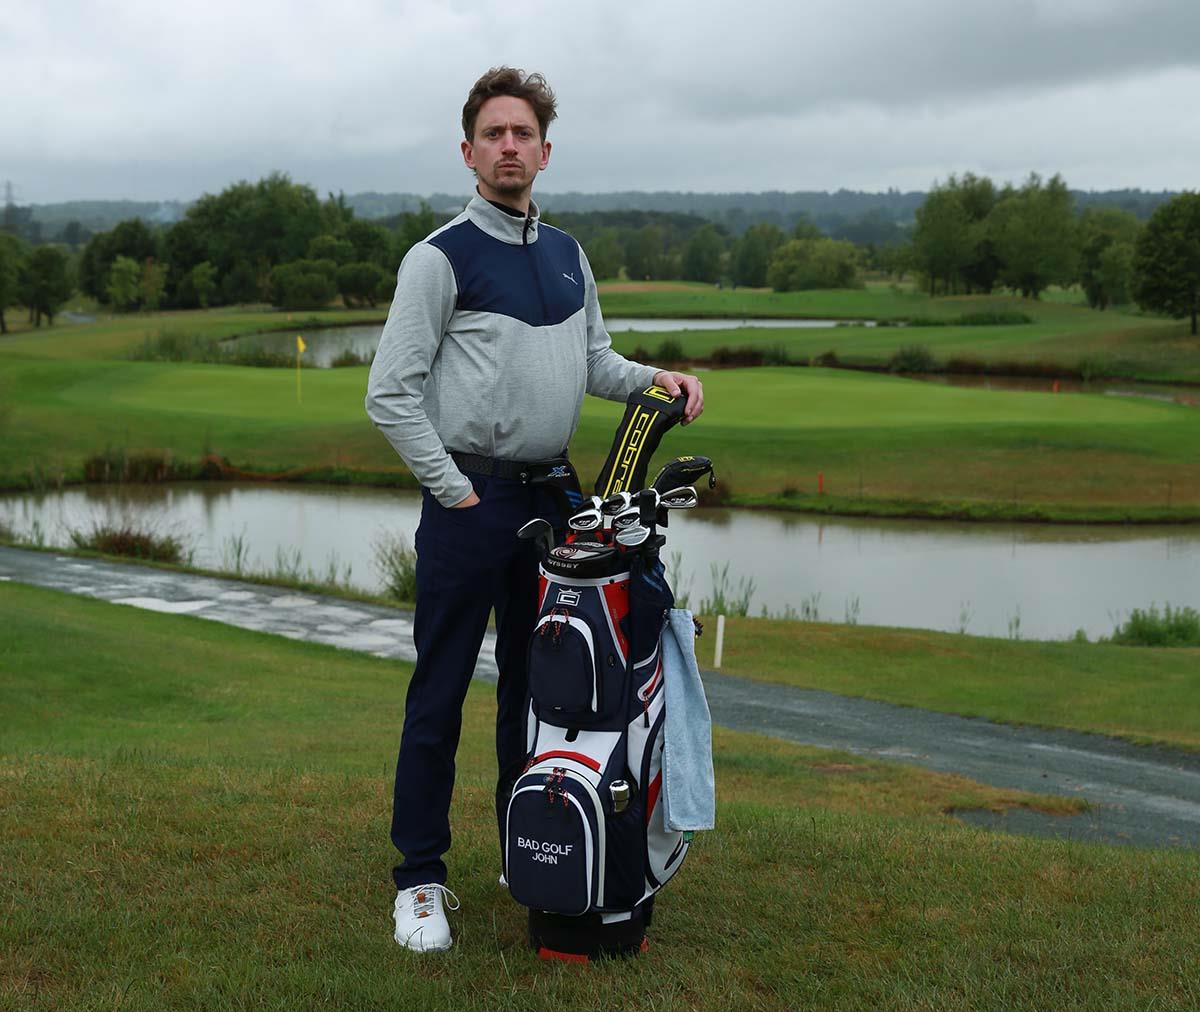 John Robins from Bad Golf with his Cobra golf bag.